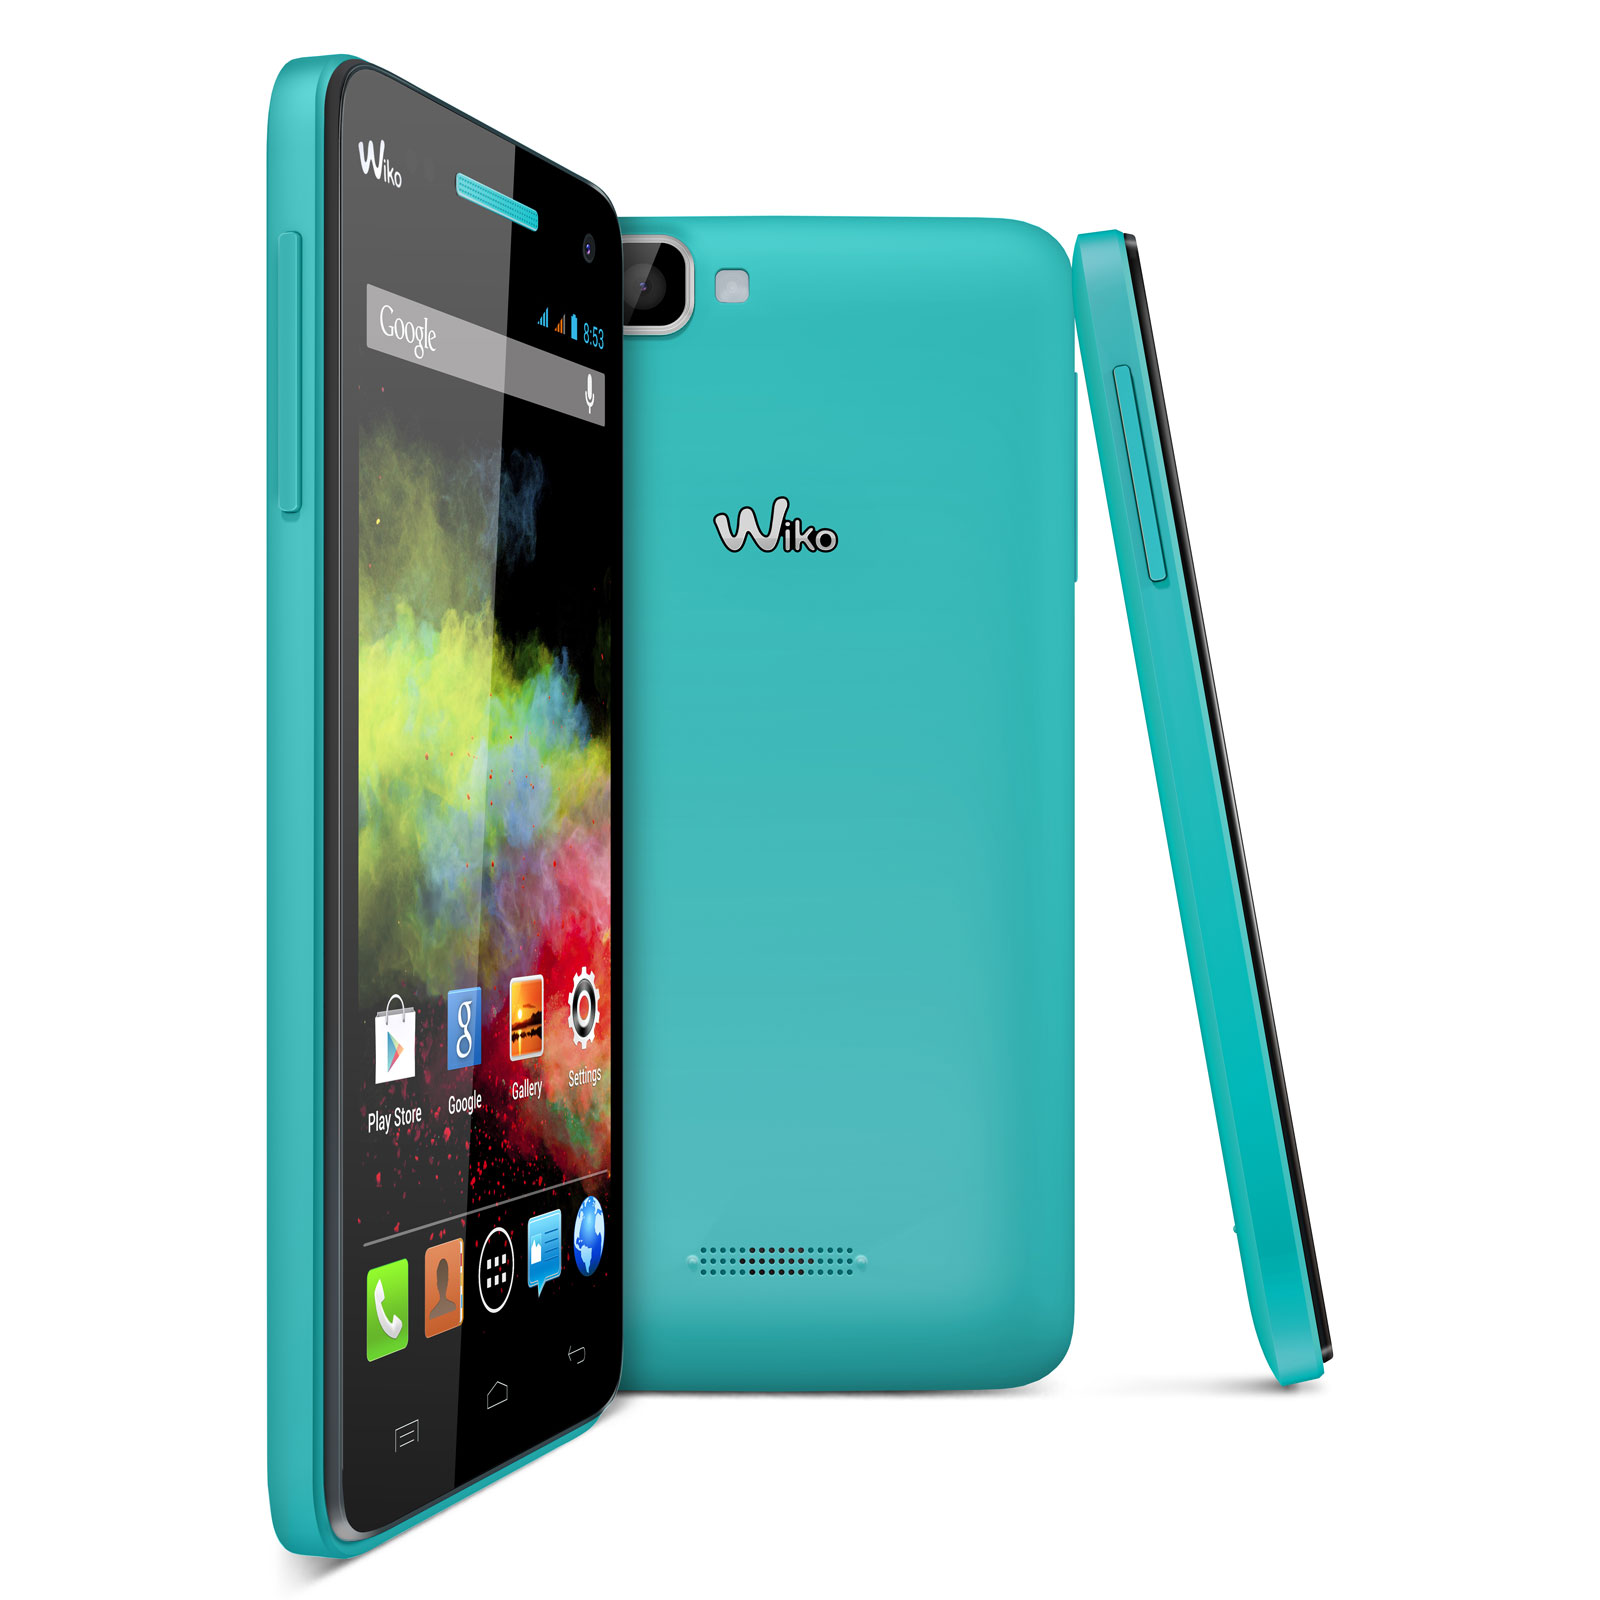 wiko rainbow turquoise mobile smartphone wiko sur. Black Bedroom Furniture Sets. Home Design Ideas